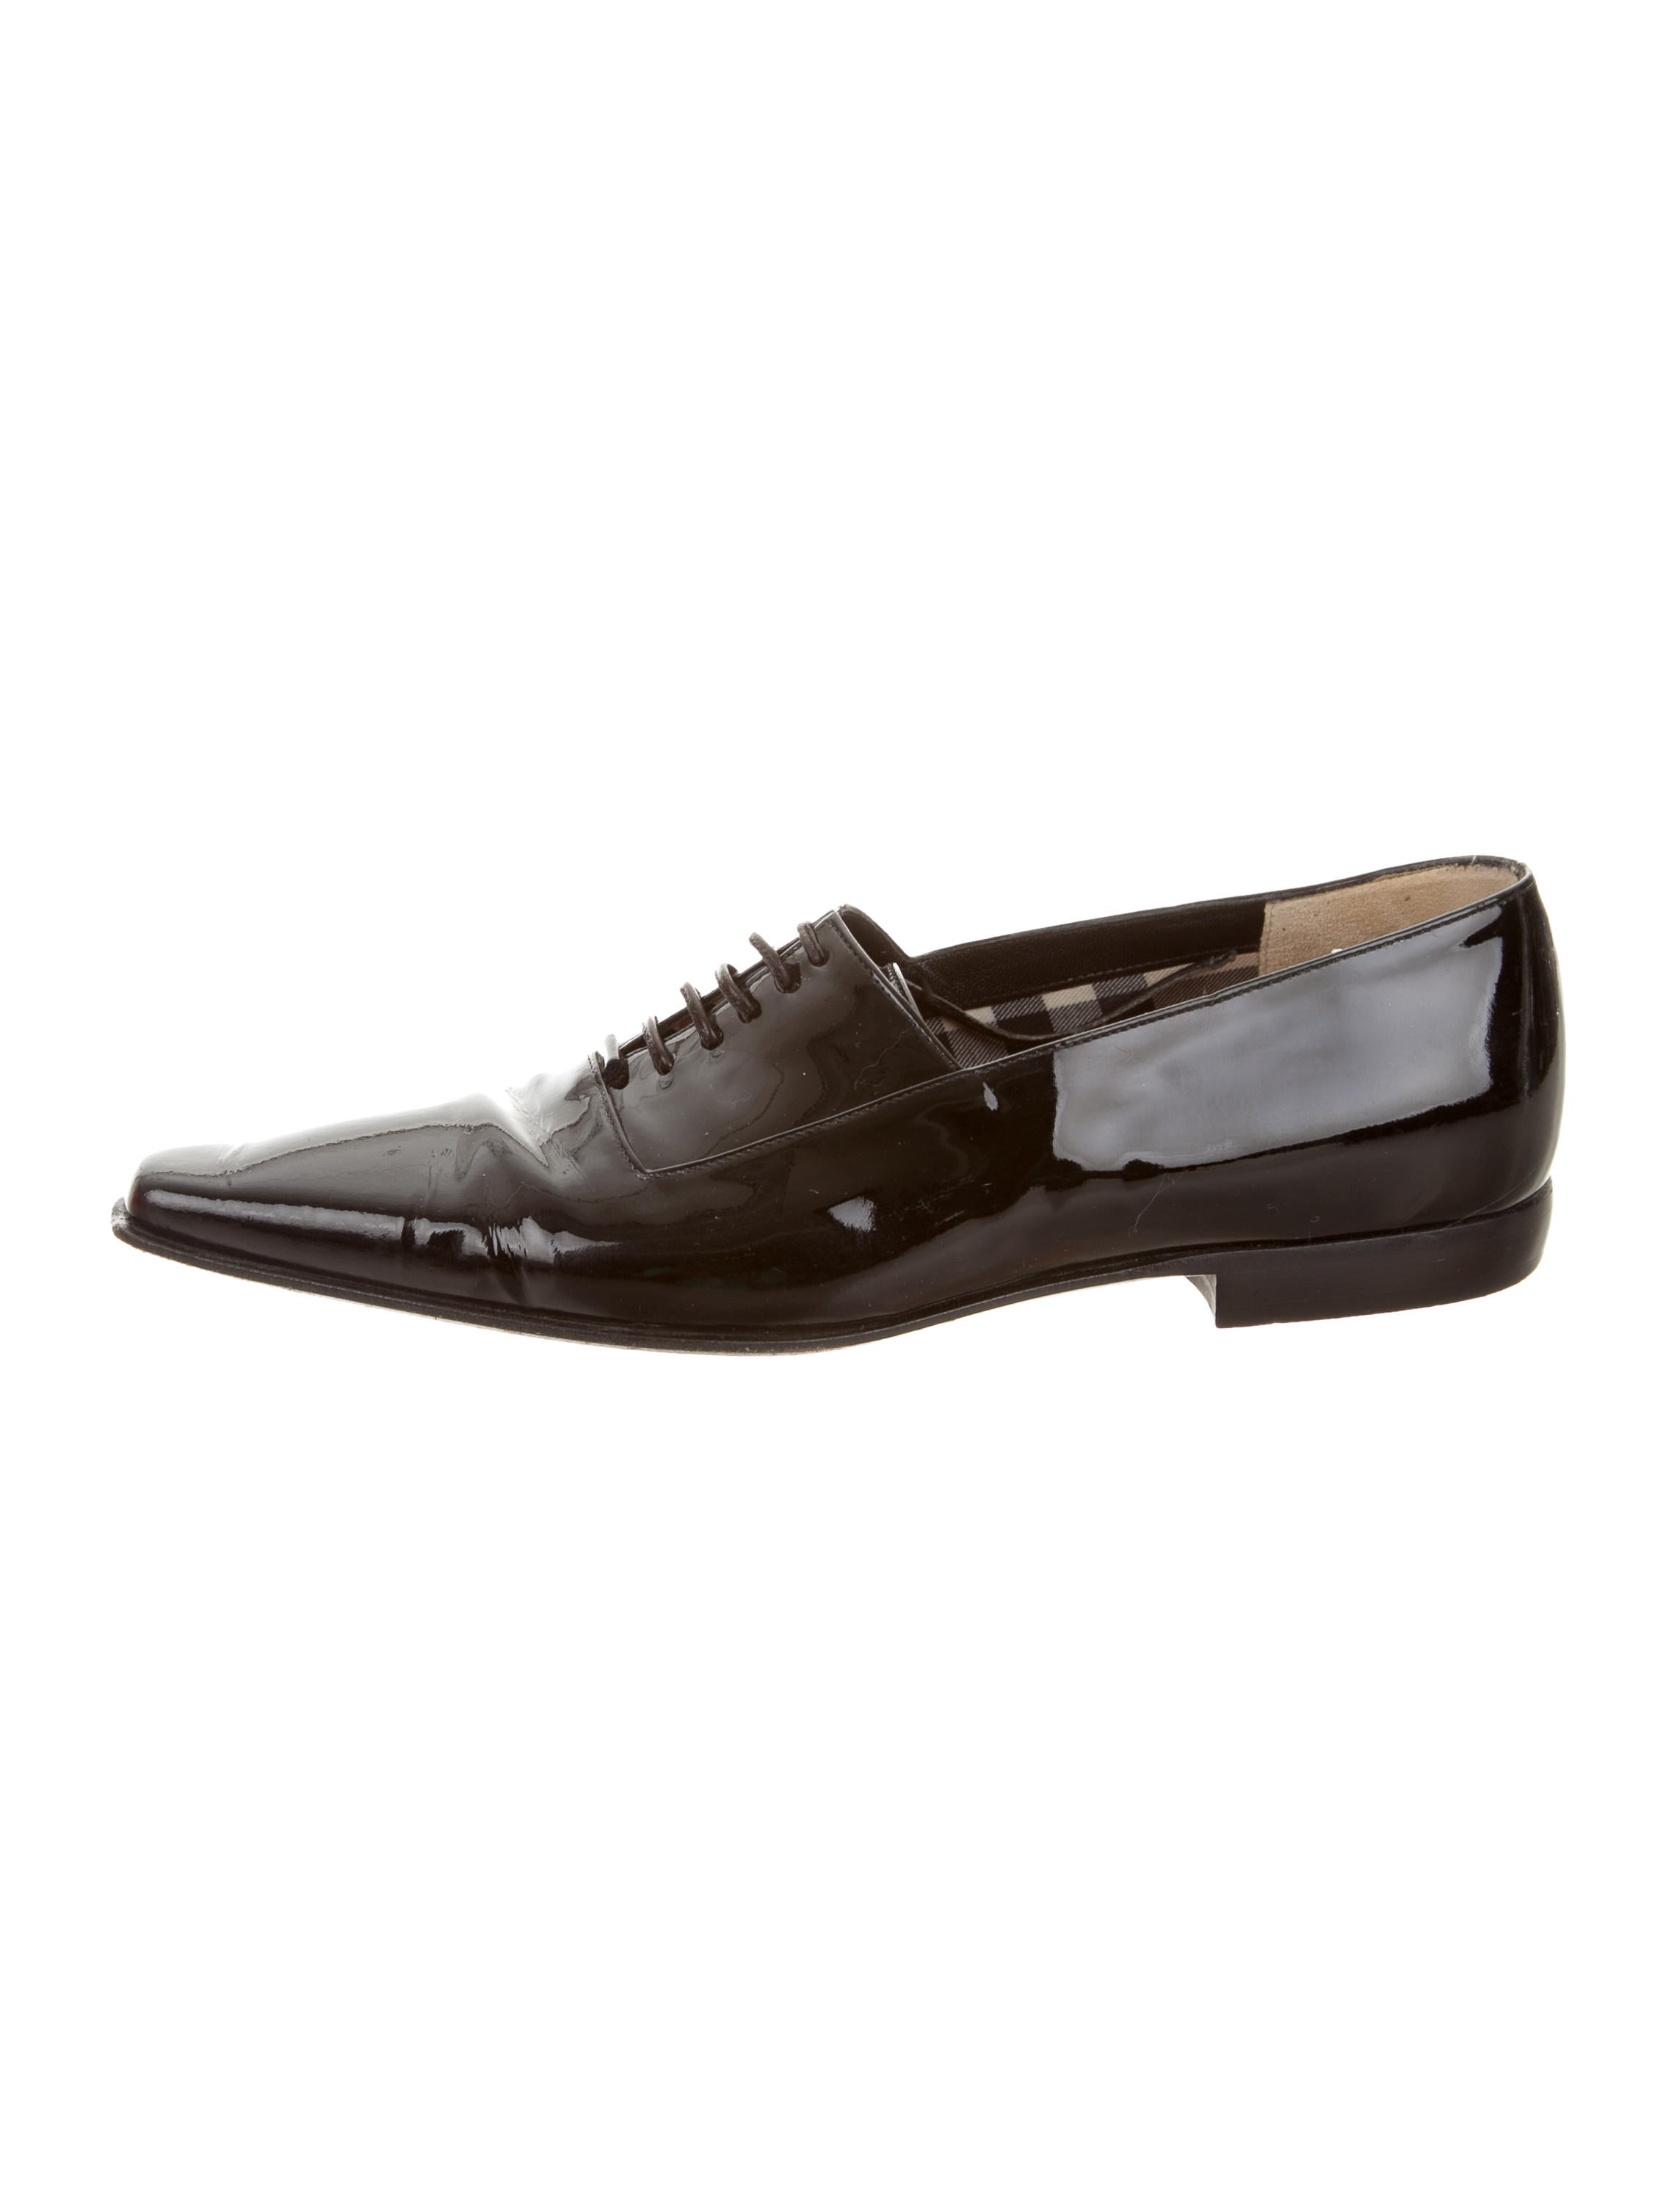 0 Review(s) Smart shoes are crucial to making a refined impression, so put your best foot forward in these debonair oxfords. Flawlessly constructed from high-shine metallic patent-leather, this pair has smooth linings and robust soles, ensuring longevity.